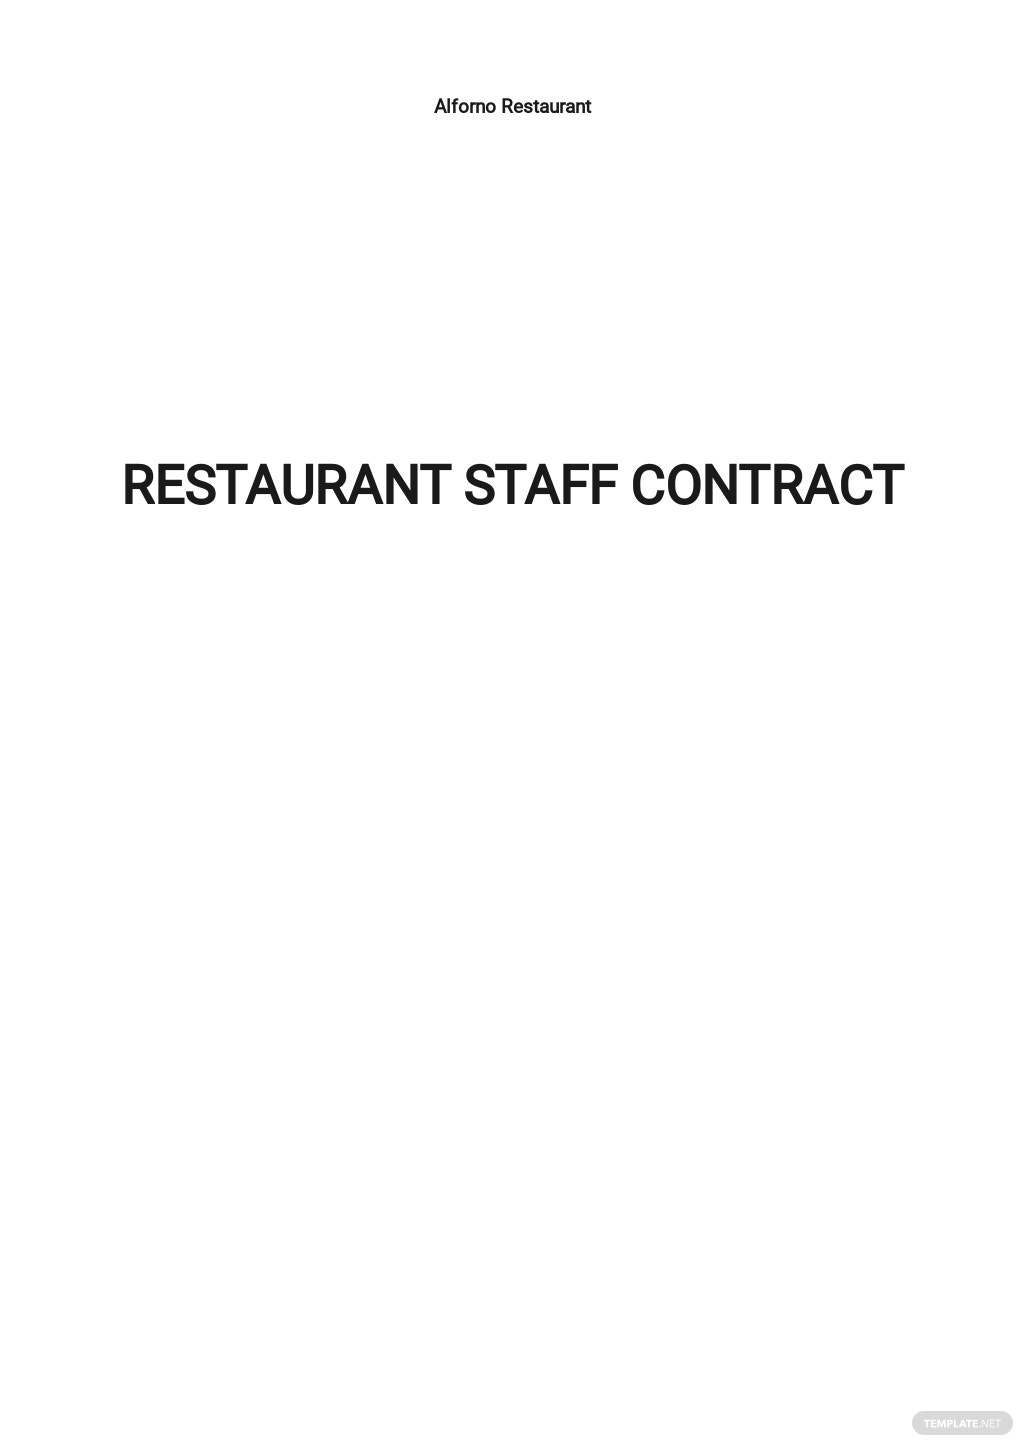 Restaurant Staff Contract Template